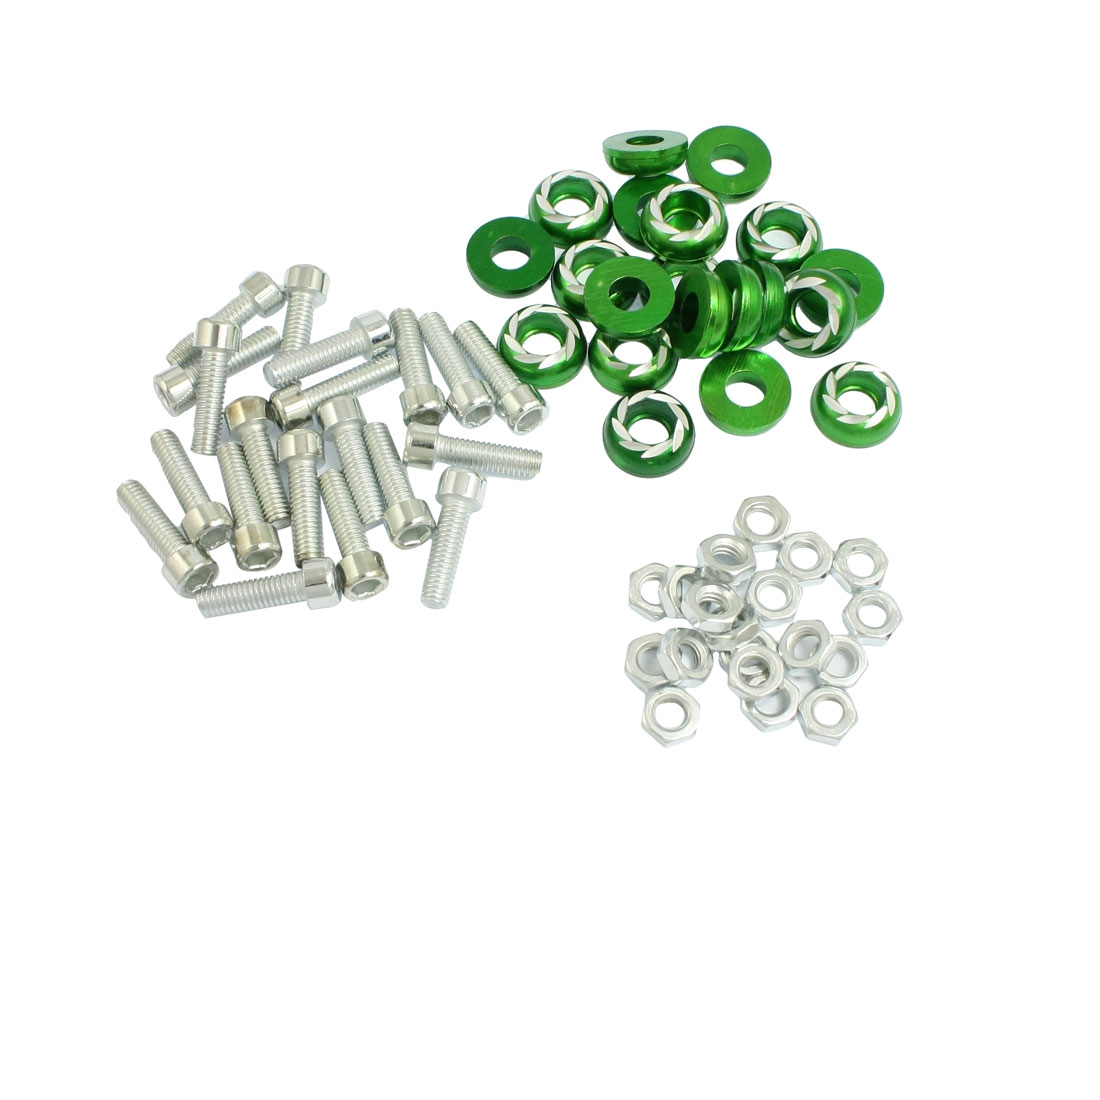 20 Pcs Silver Tone Green Round Car License Plate Bolt Screw